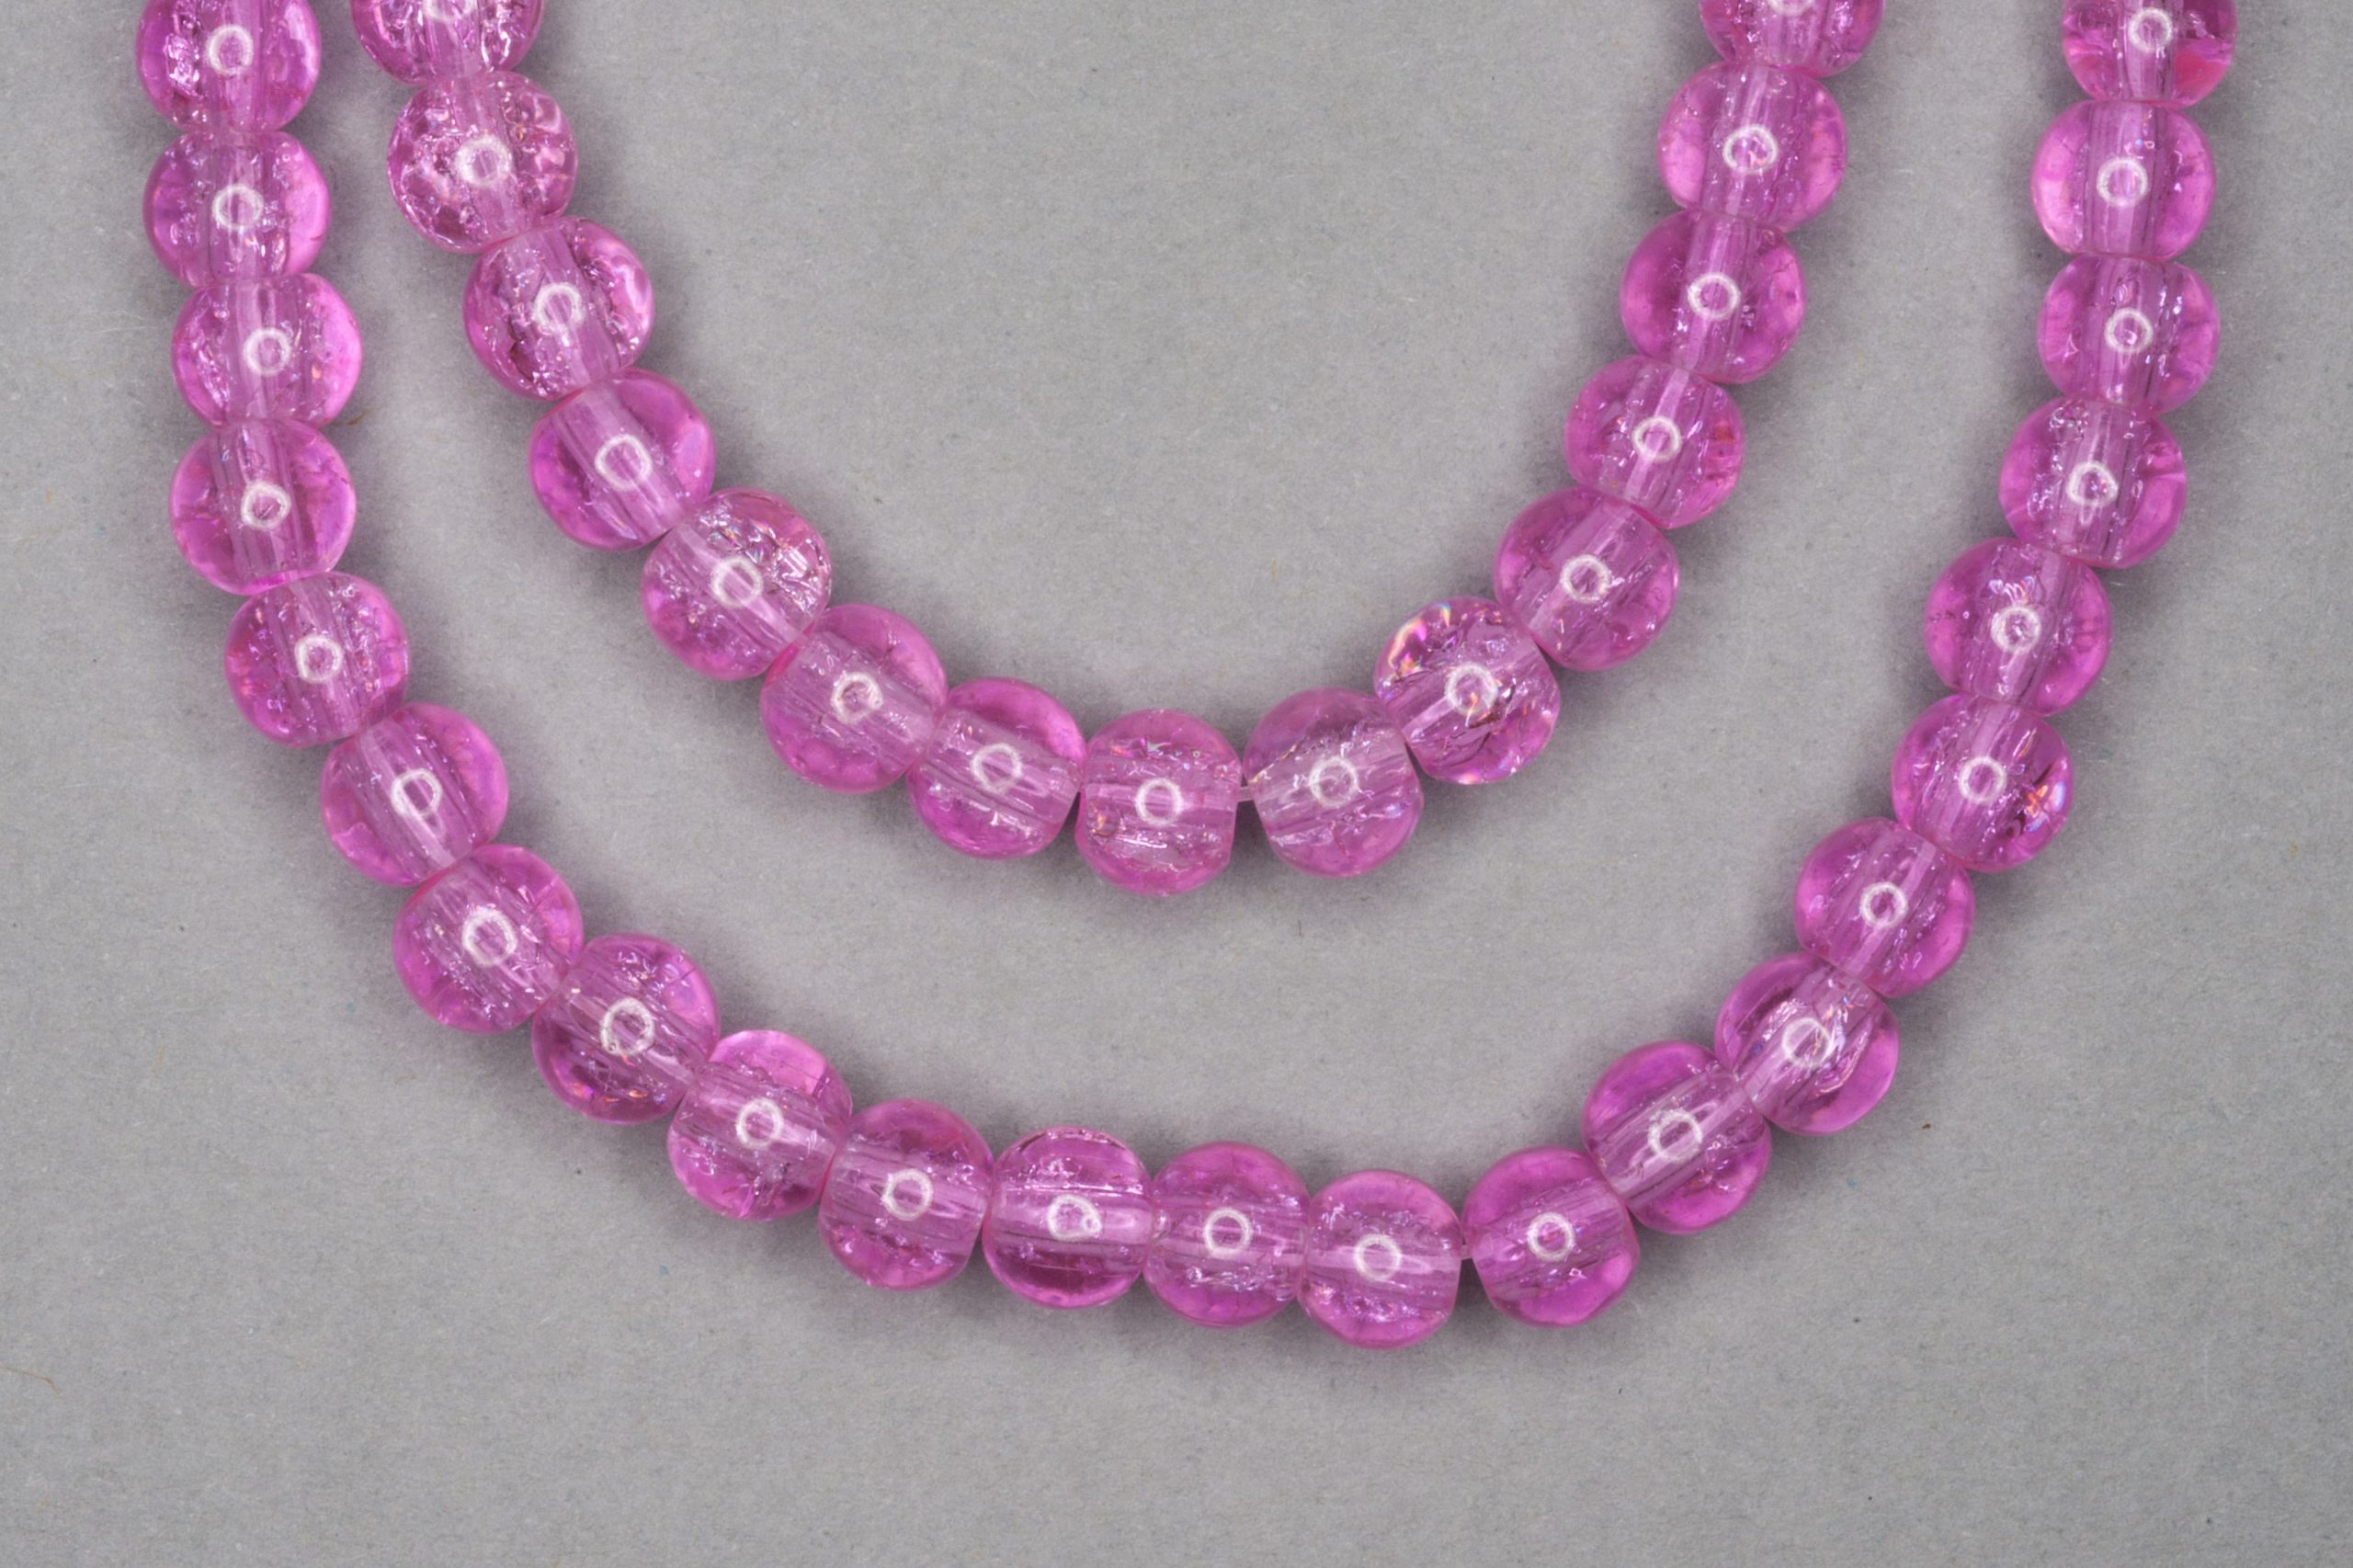 Bubblegum Crackle Glass Beads